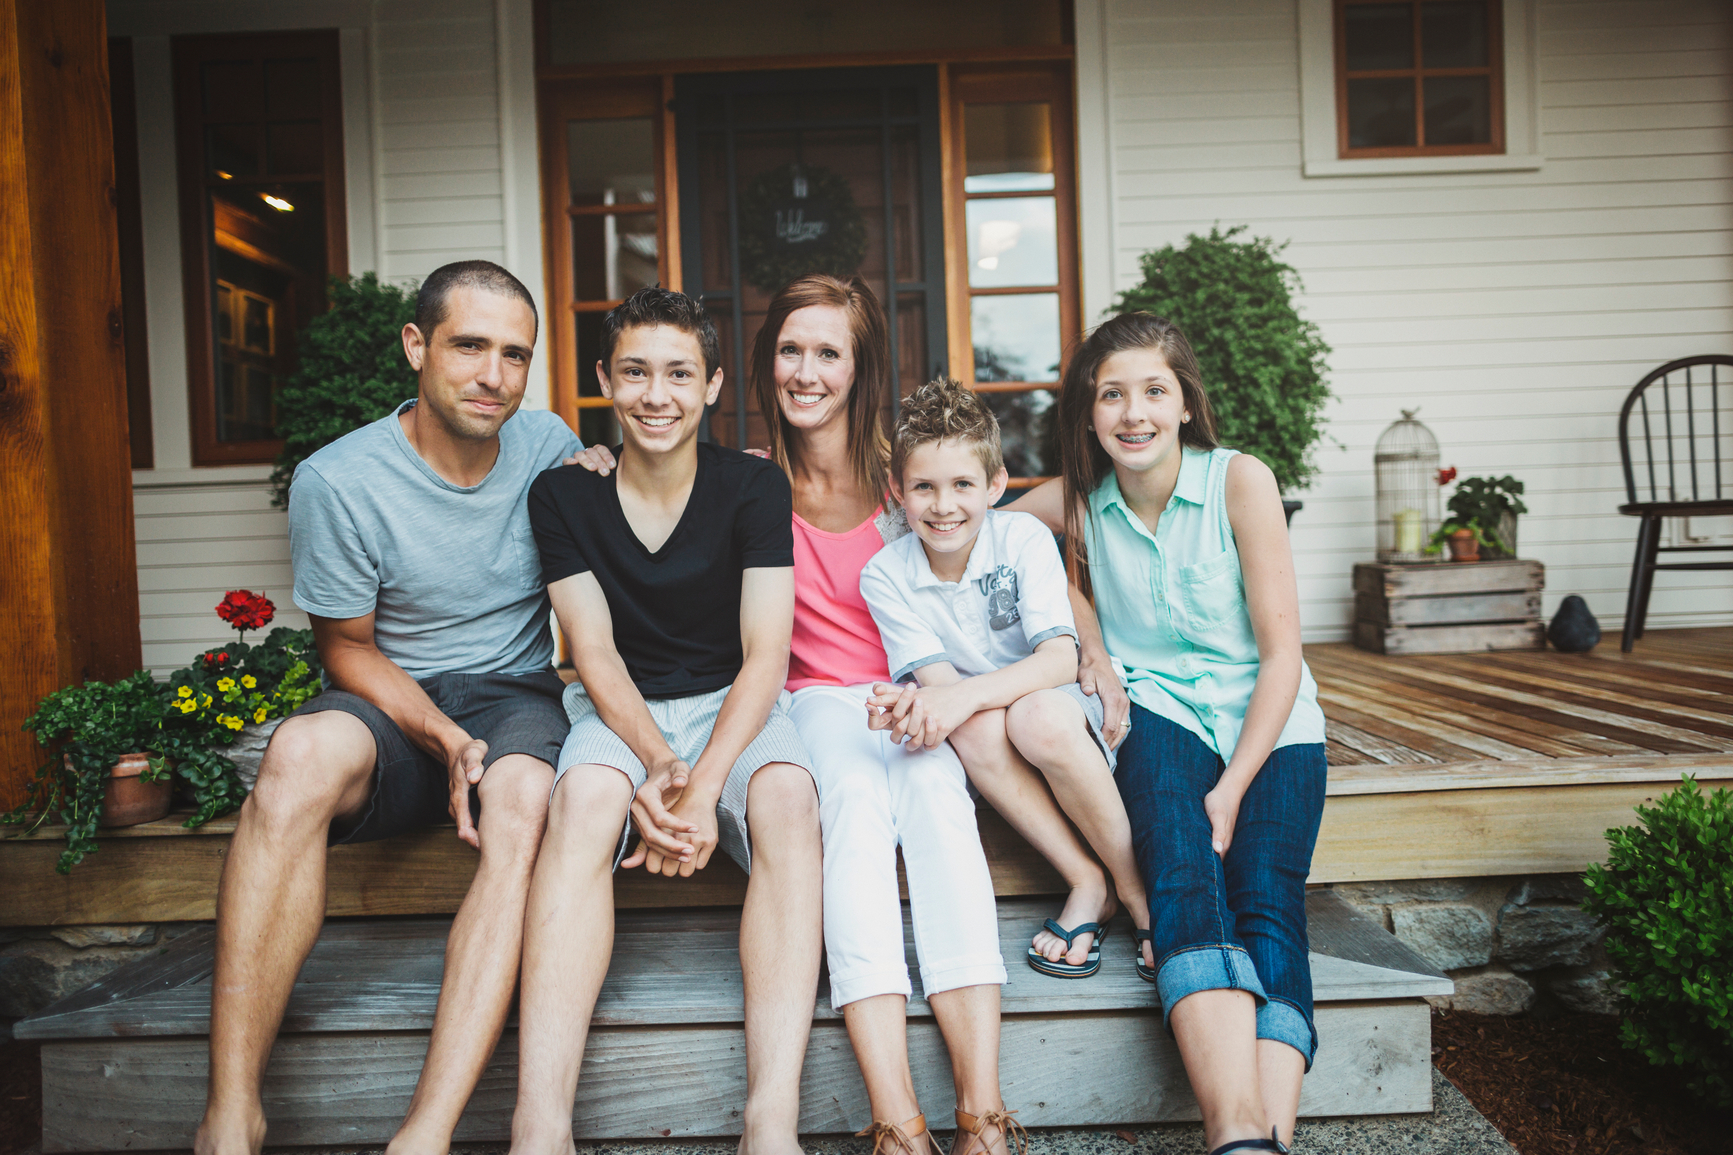 Portrait of happy, loving family with teenagers at home on front